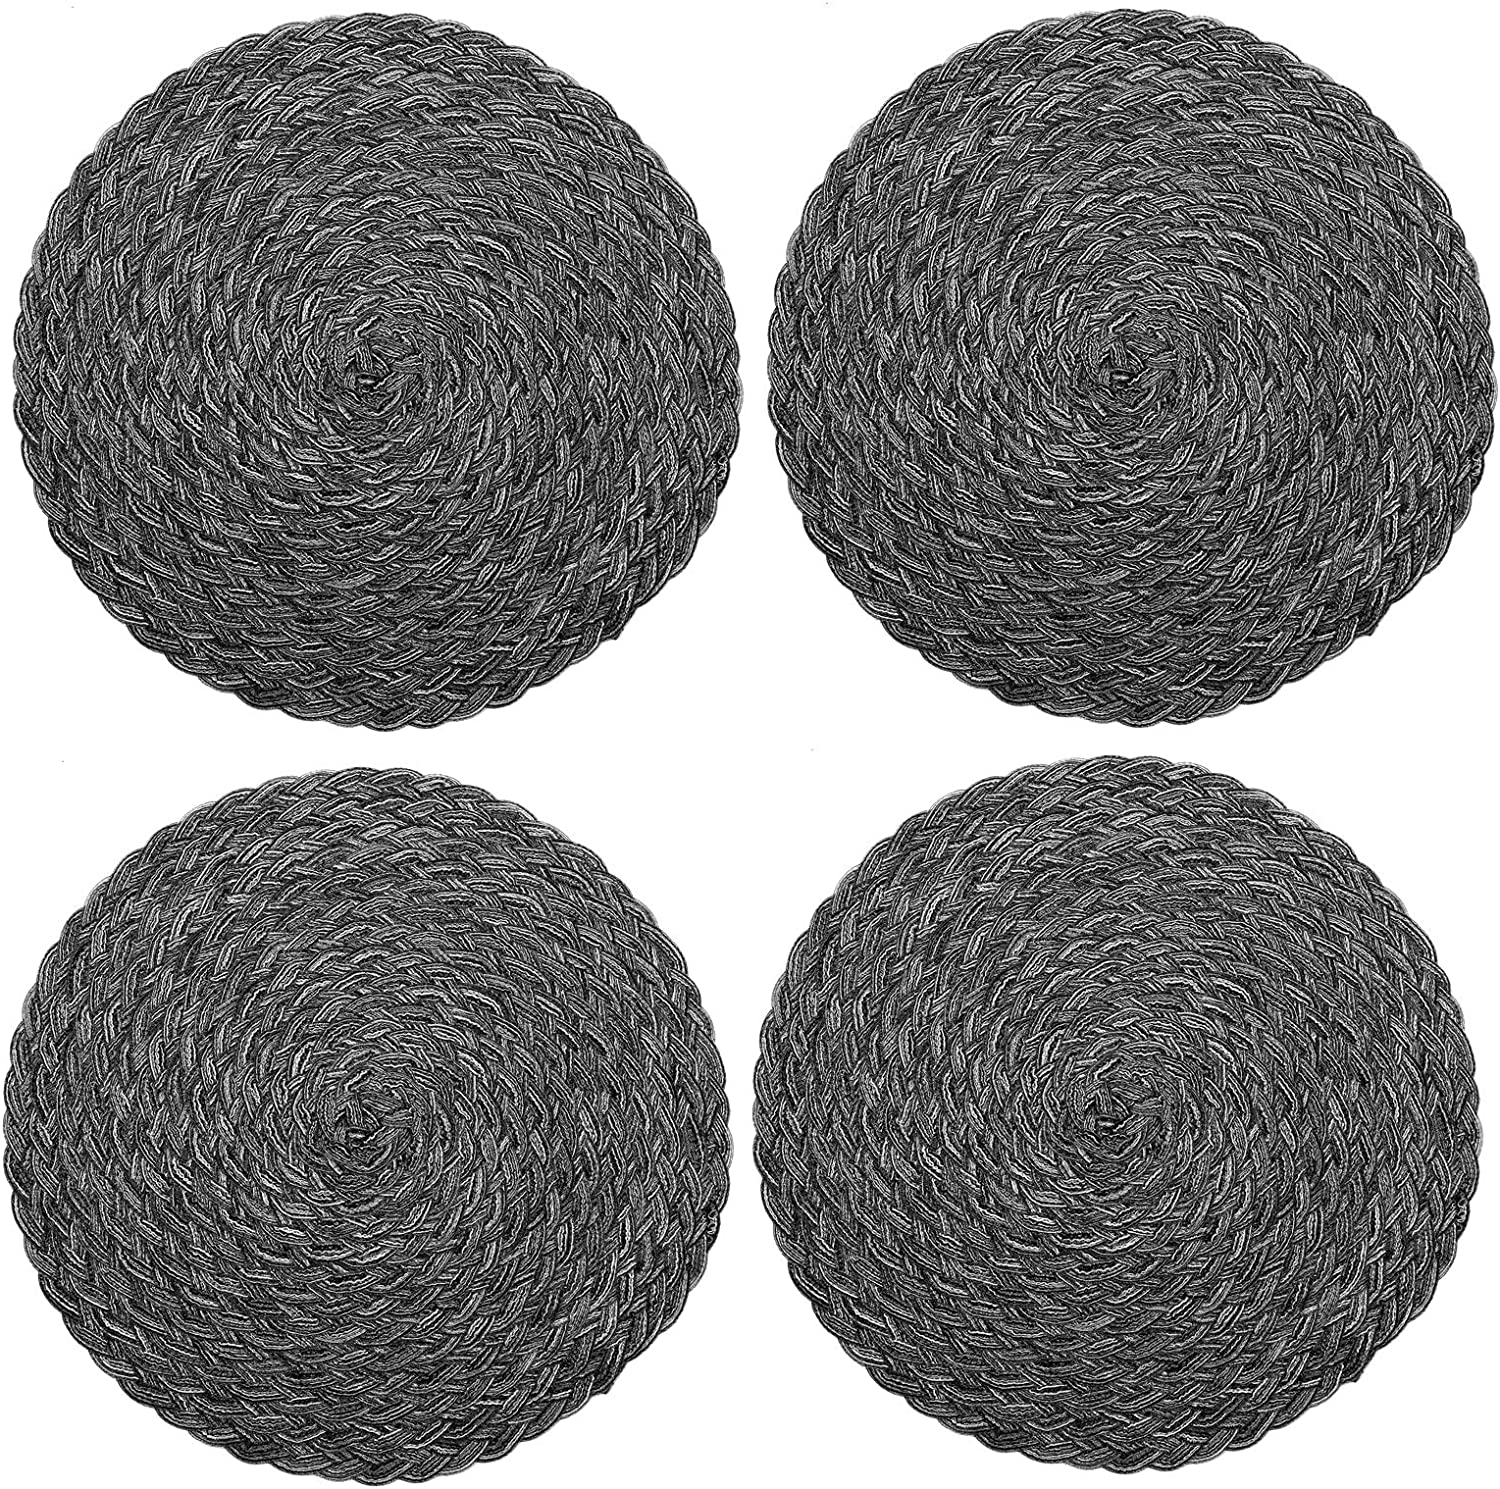 Topotdor Round Placemats Heat-Resistant Stain Resistant Anti-Skid Washable Polyproplene Table Mats Placemats (Braided-Gray, Set of 4): Home & Kitchen